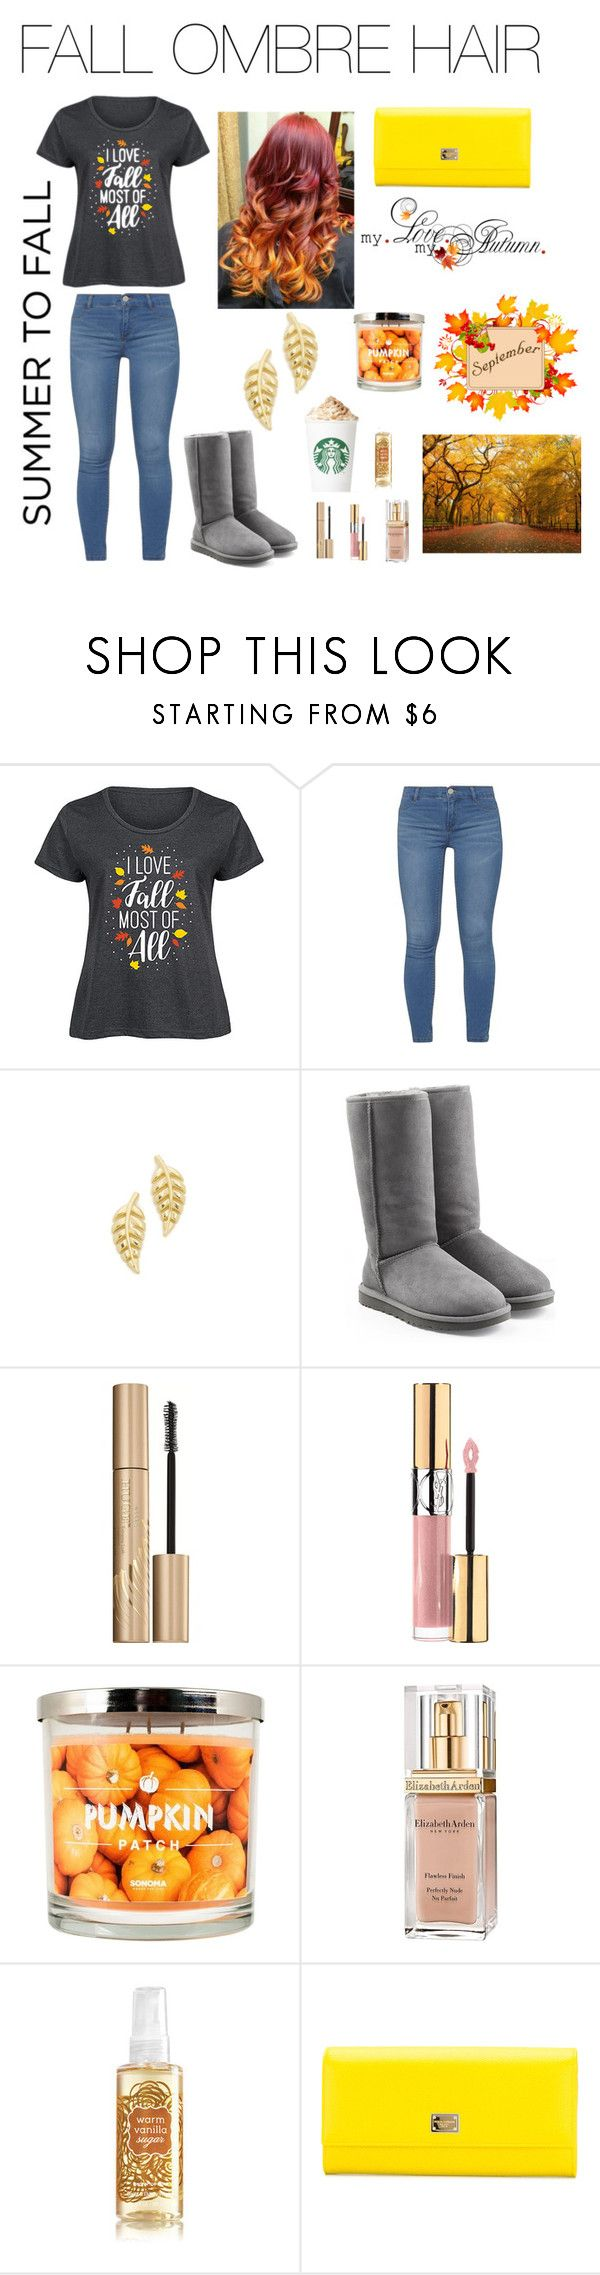 """"""" fall ombre hair """" by seashore77 ❤ liked on Polyvore featuring LC Trendz, Dorothy Perkins, Jennifer Meyer Jewelry, UGG Australia, Stila, Yves Saint Laurent, SONOMA Goods for Life, Elizabeth Arden, Dolce&Gabbana and plus size clothing"""